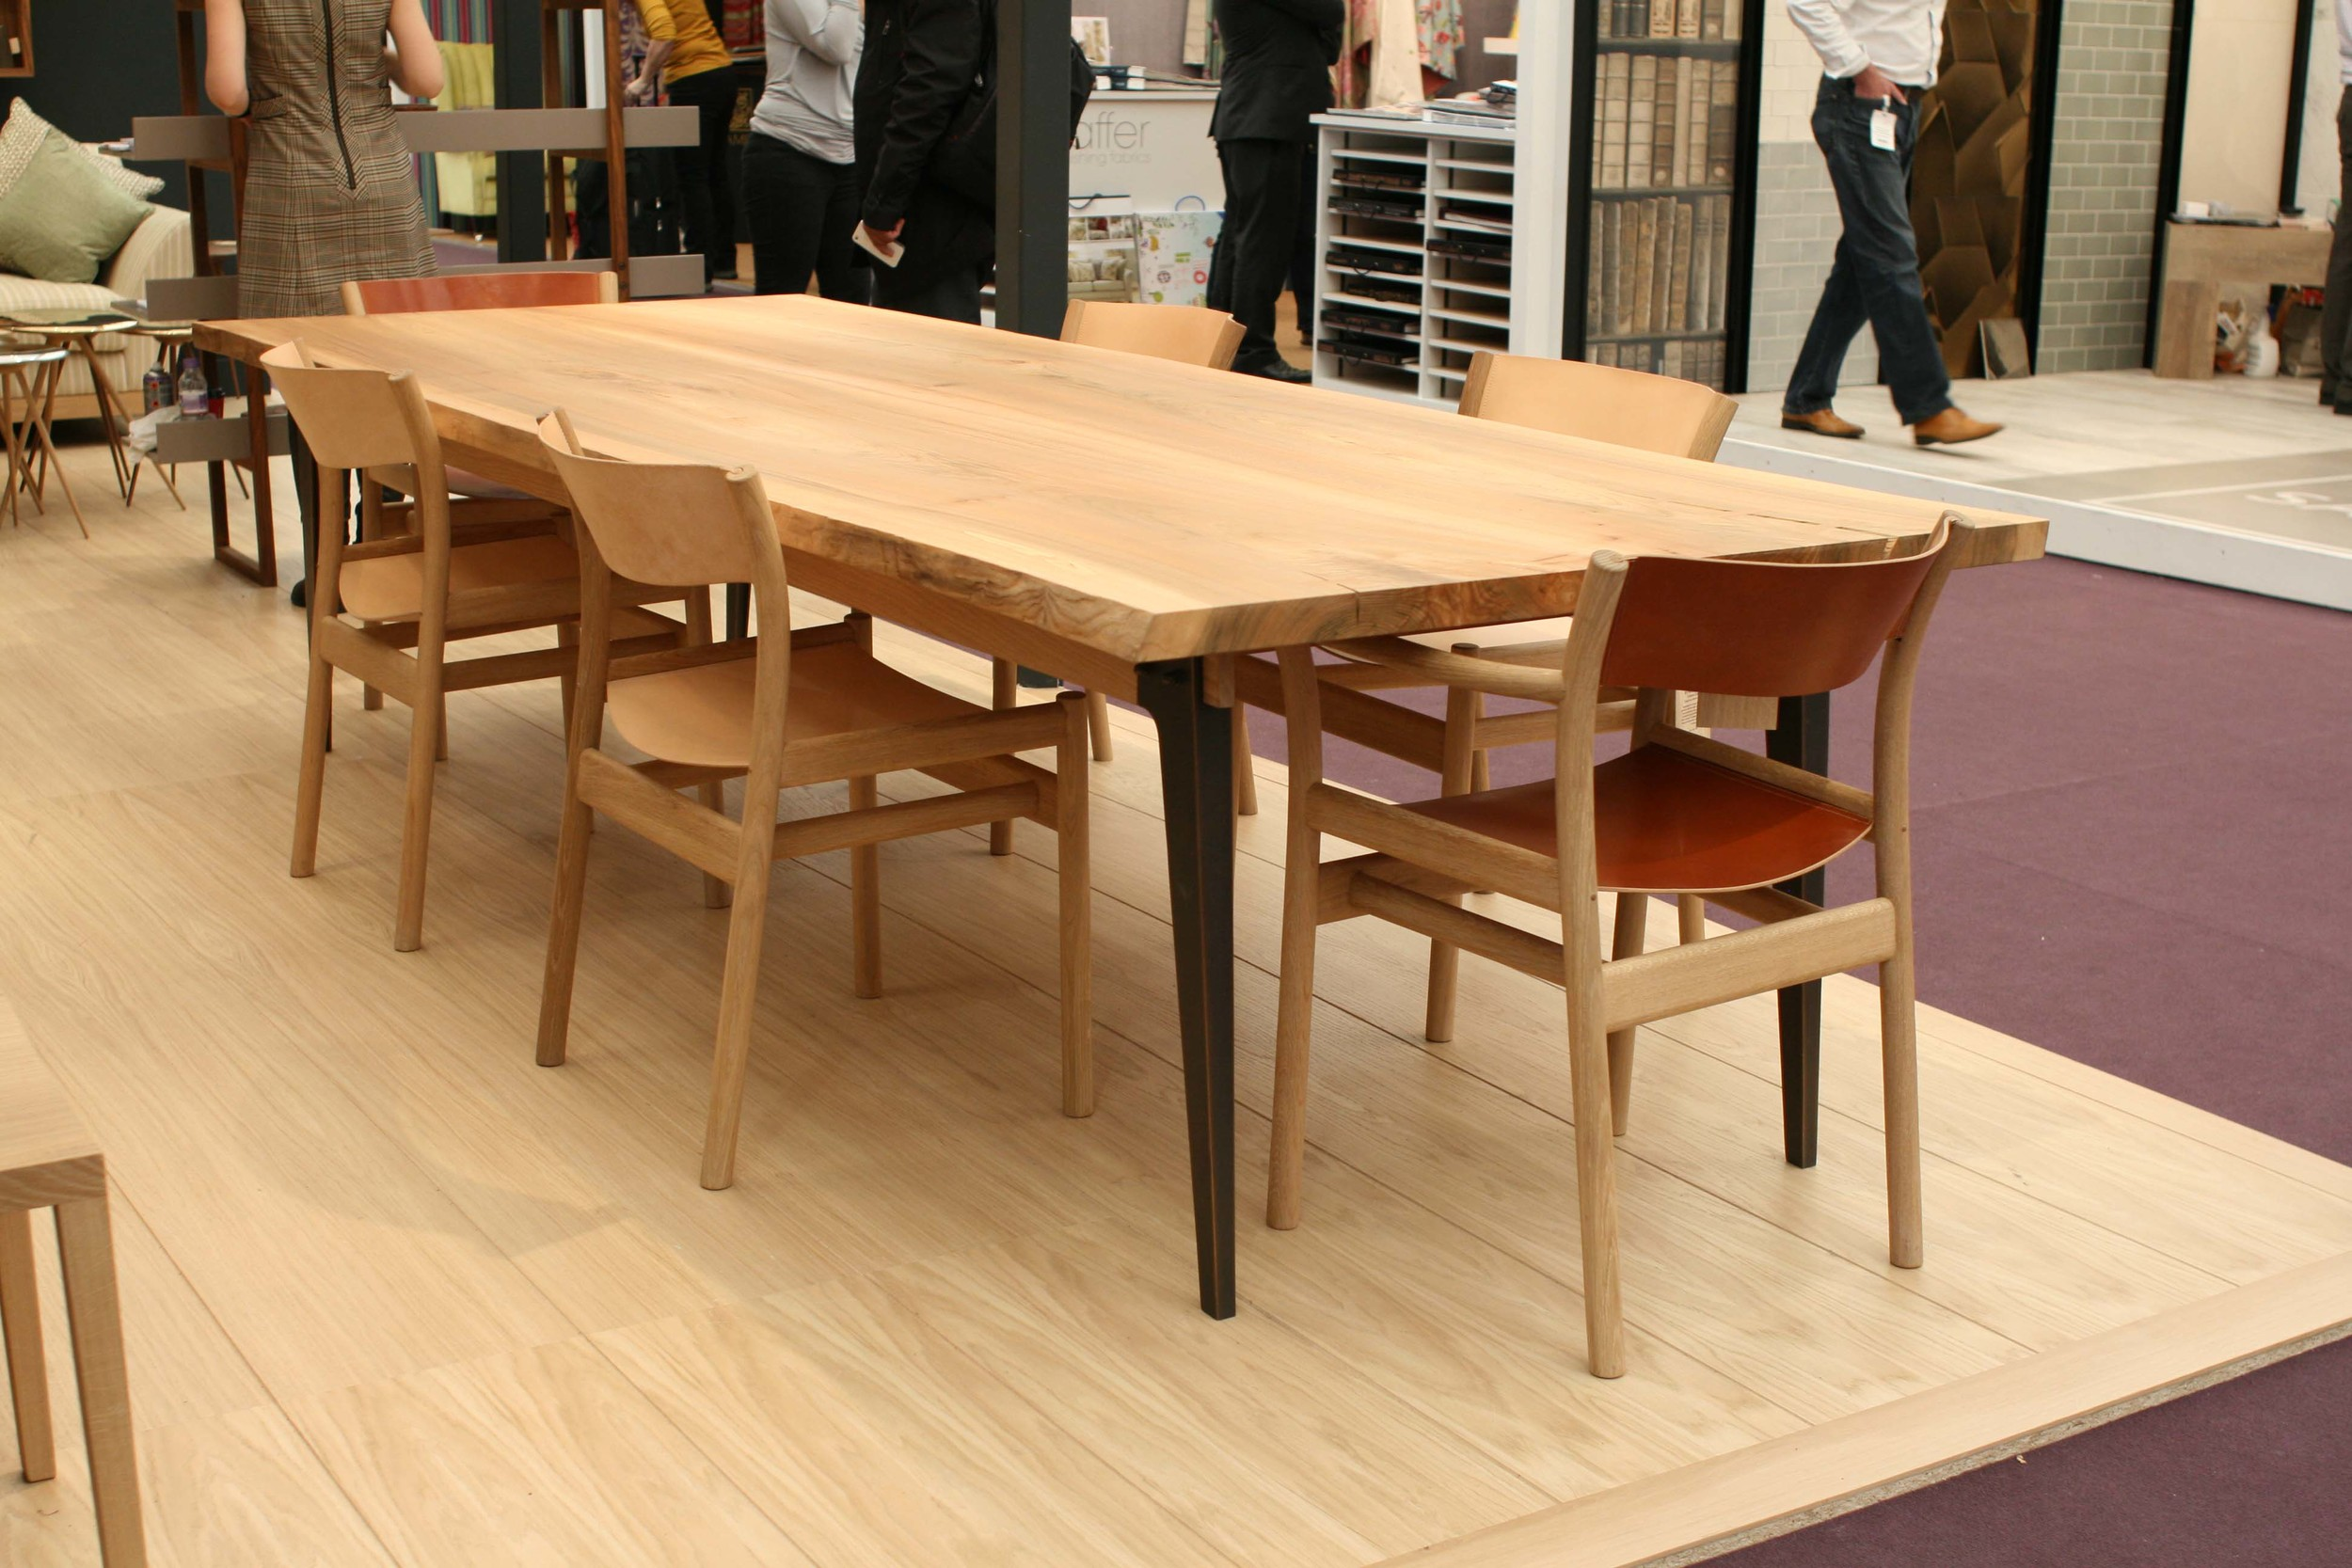 Oxbow chairs displayed at furniture design exhibition